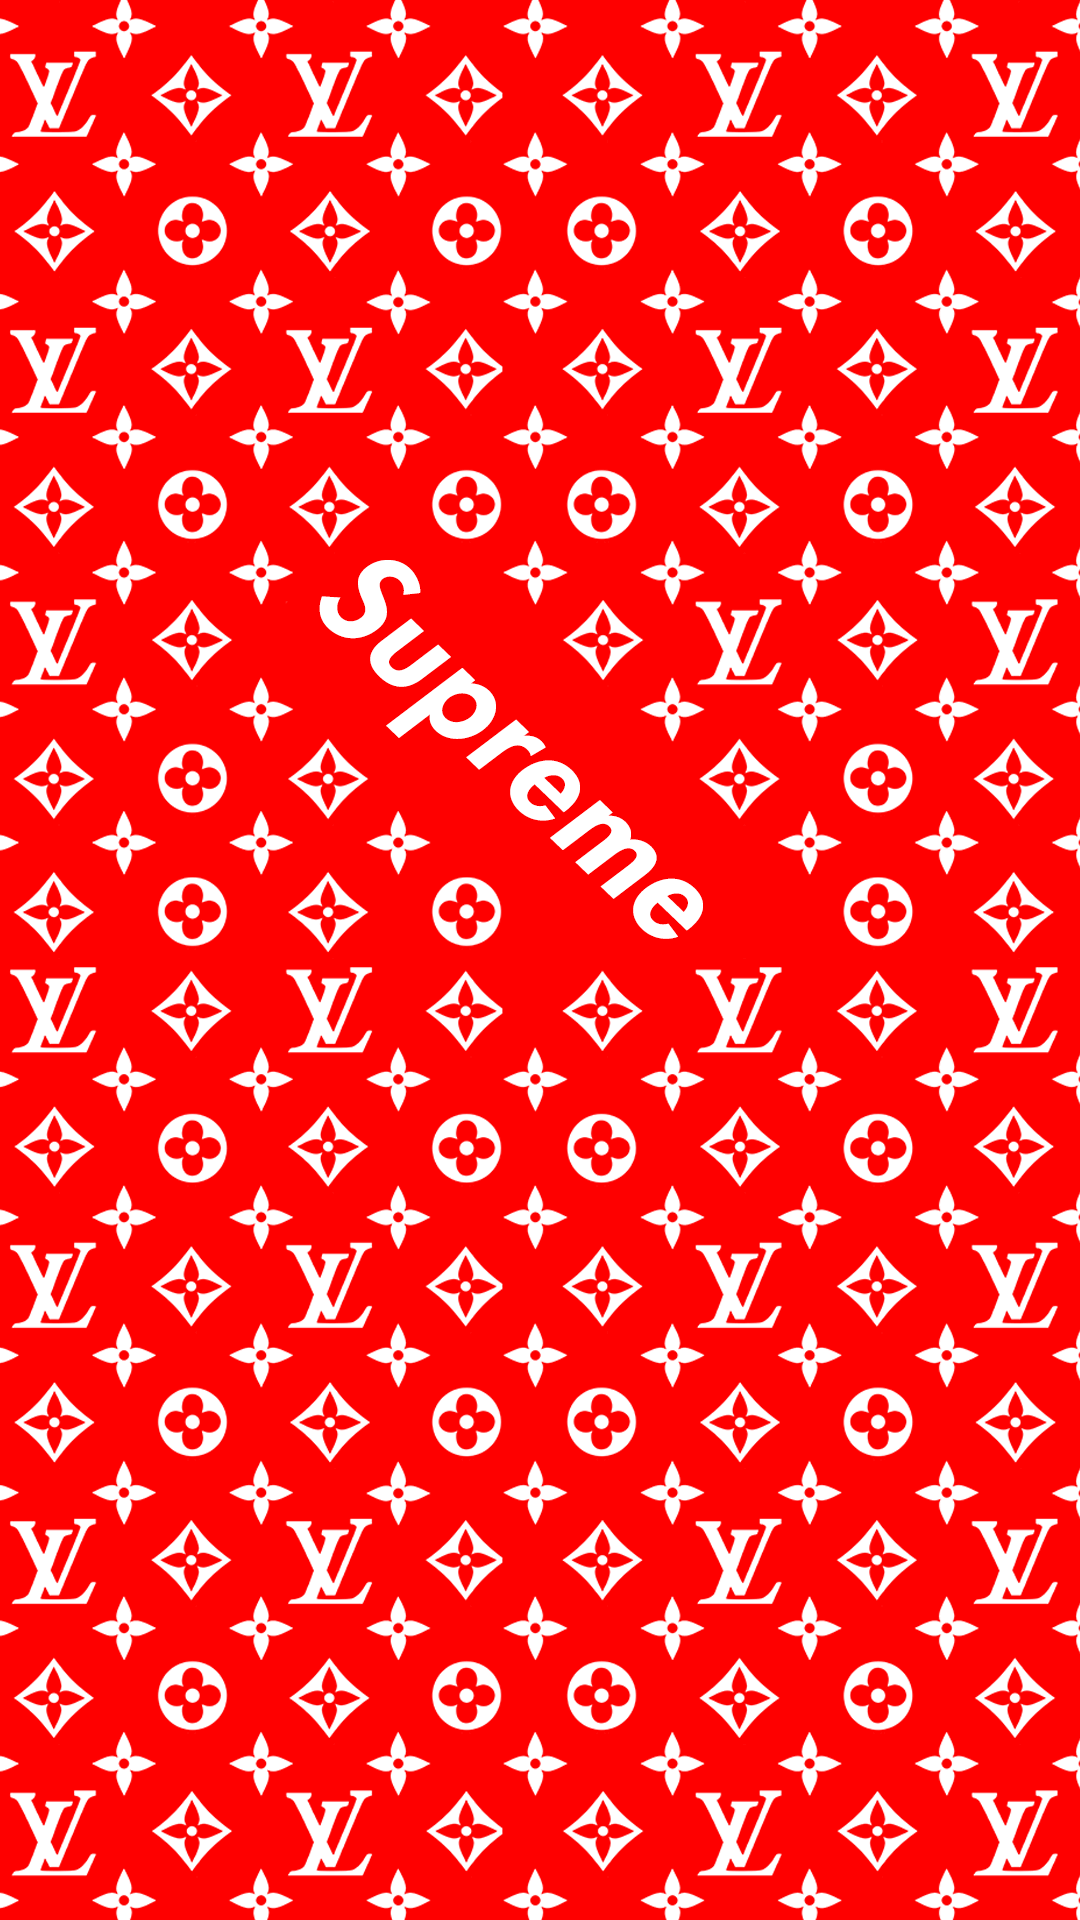 Supreme Lock screen mobile wallpaper